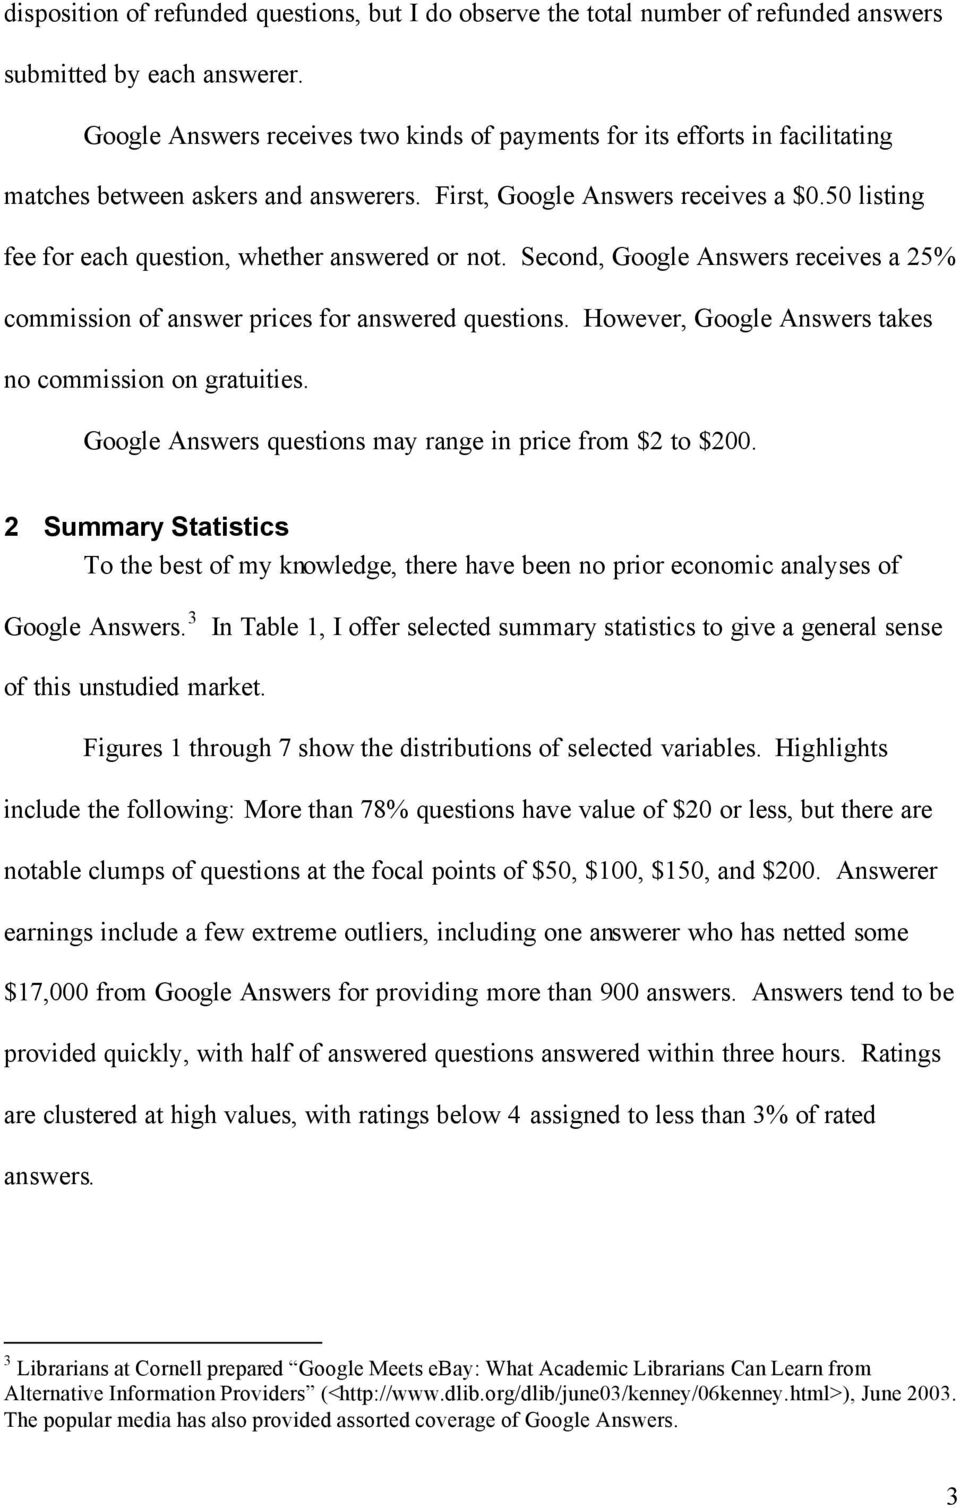 50 listing fee for each question, whether answered or not. Second, Google Answers receives a 25% commission of answer prices for answered questions.